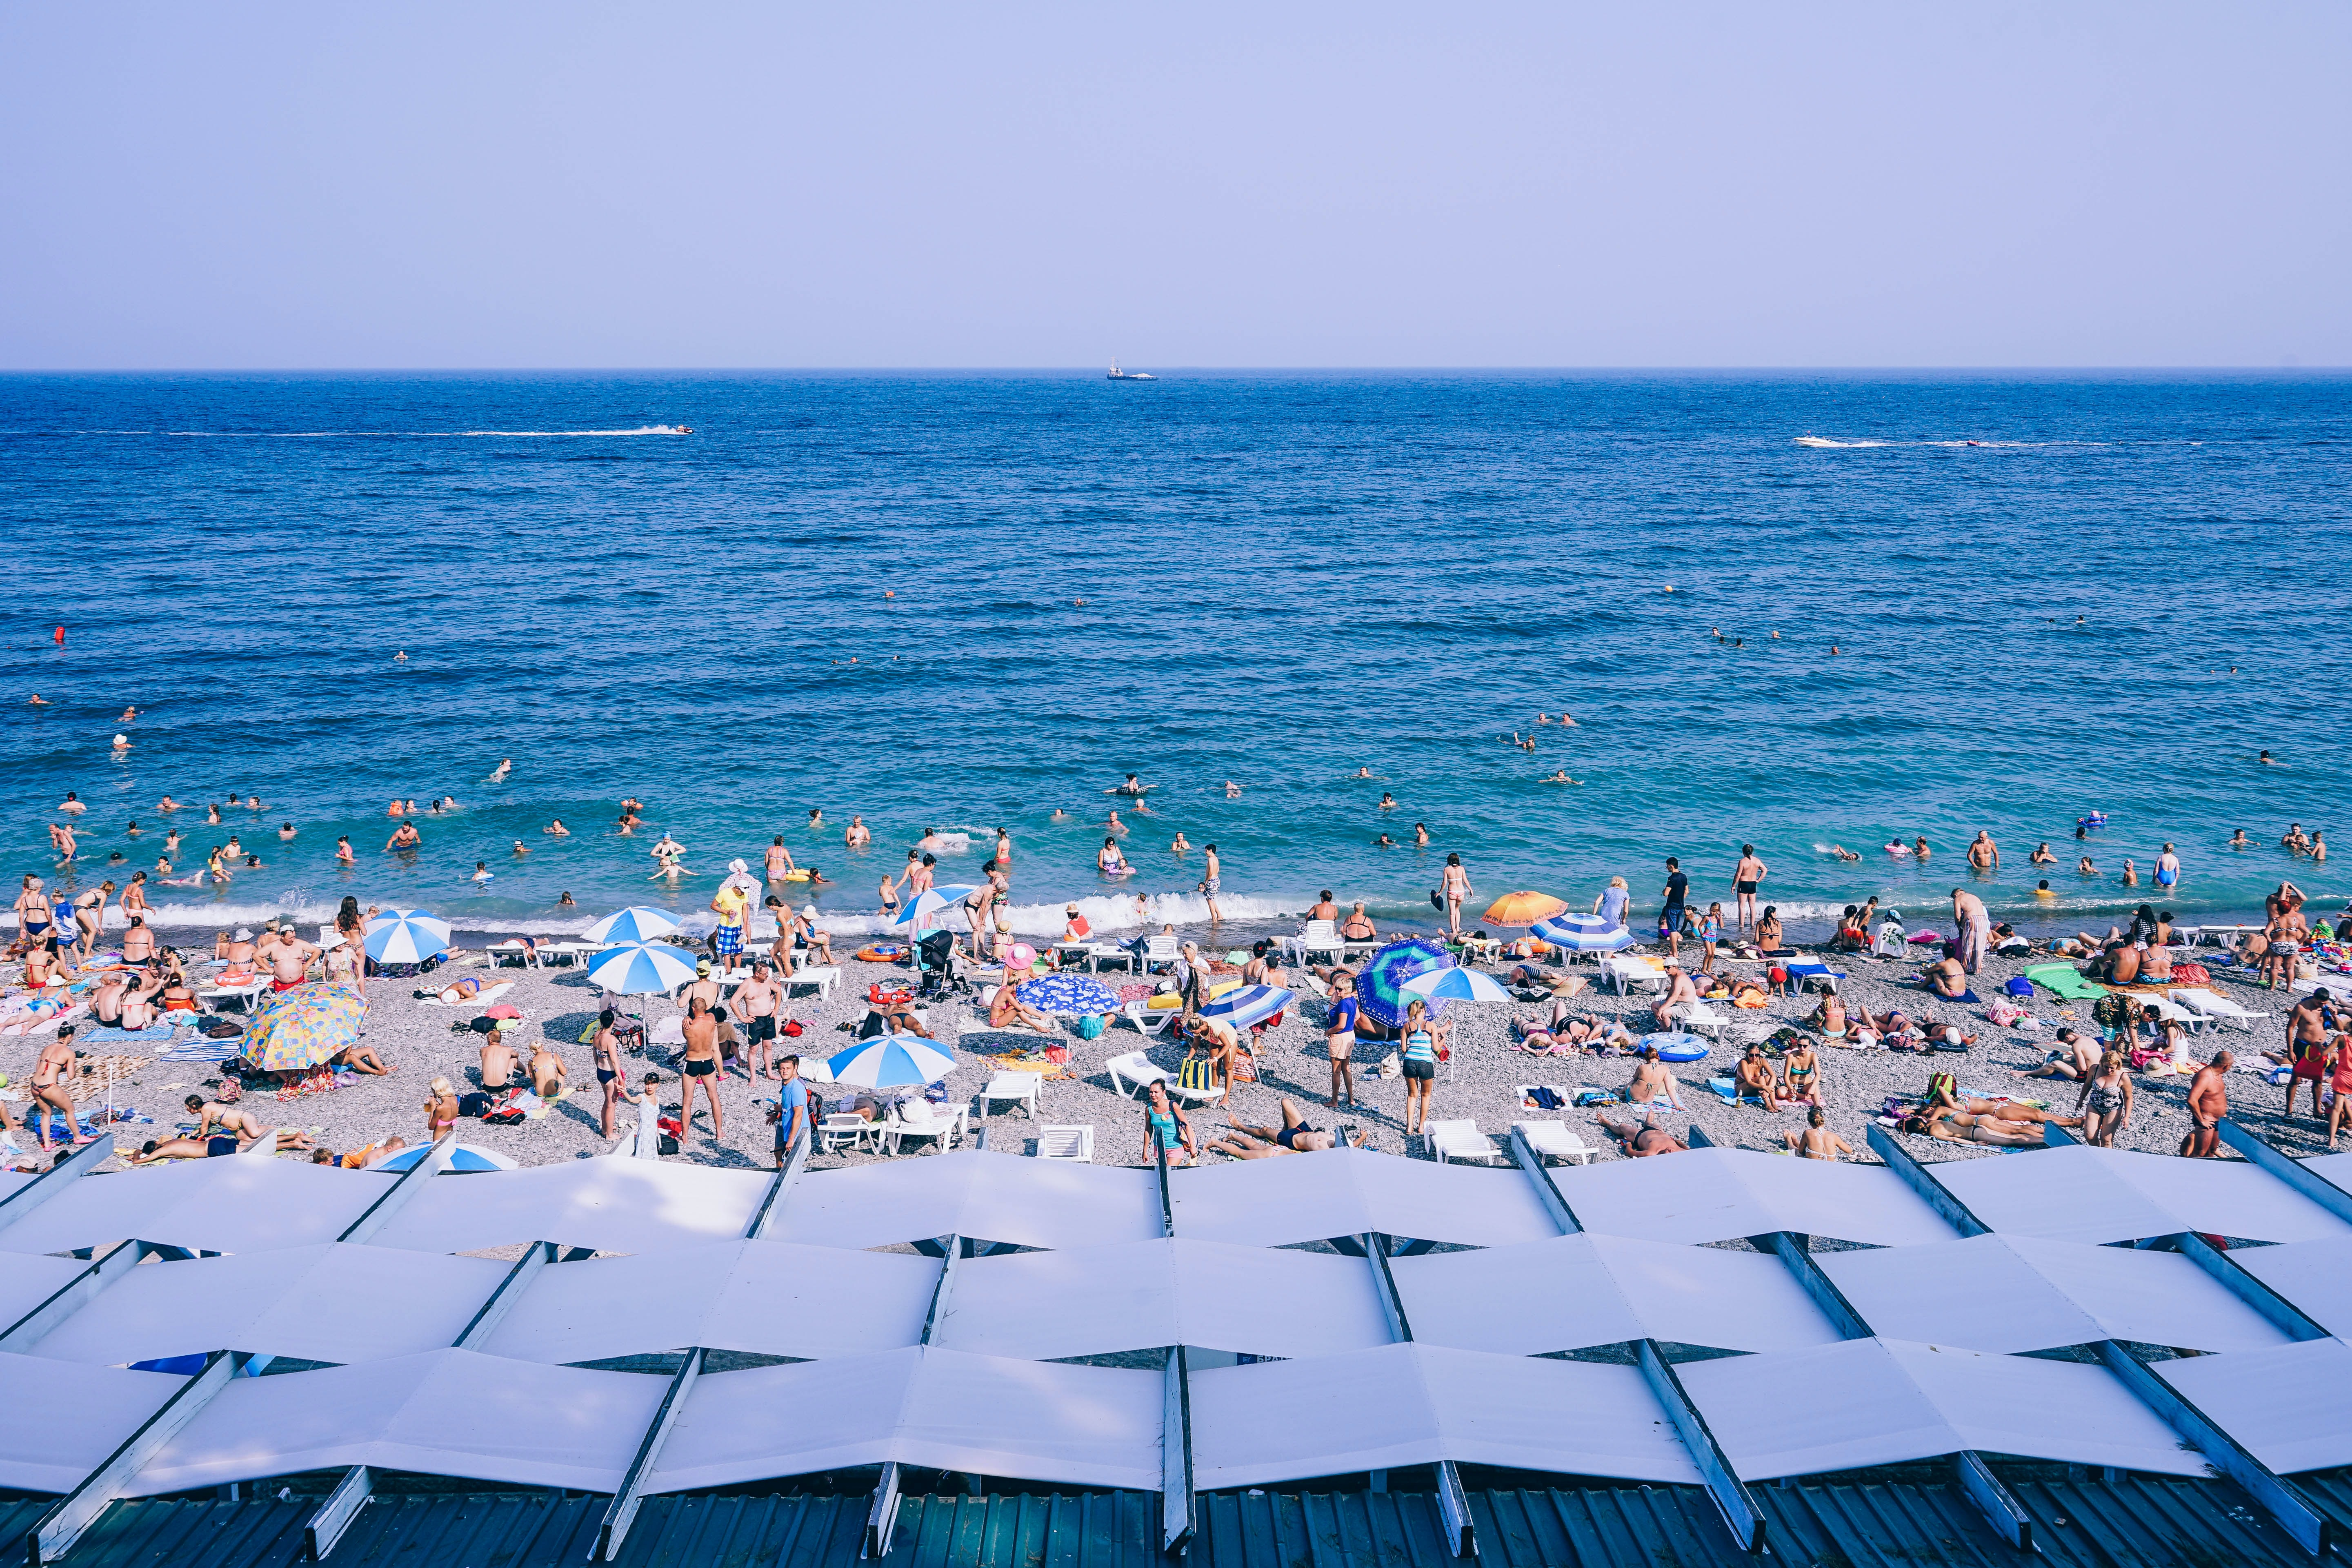 View from the back of a sandy beach on the crowd of tourists sunbathing and swimming in the sea